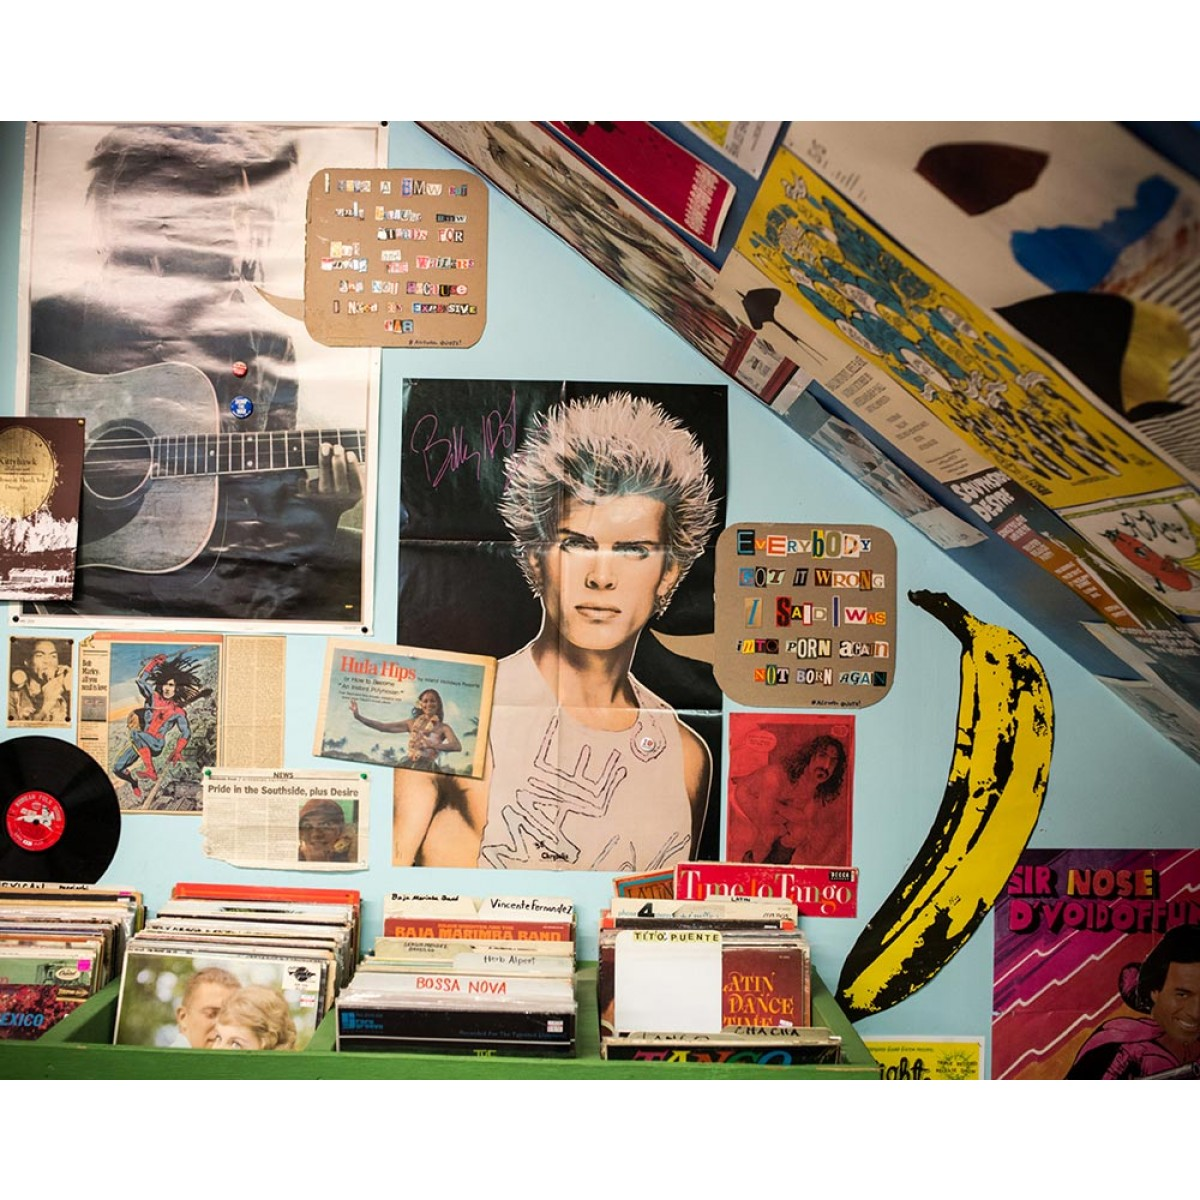 seltmann+söhne RECORD STORES by Bernd Jonkmanns – A tribute to Record Stores